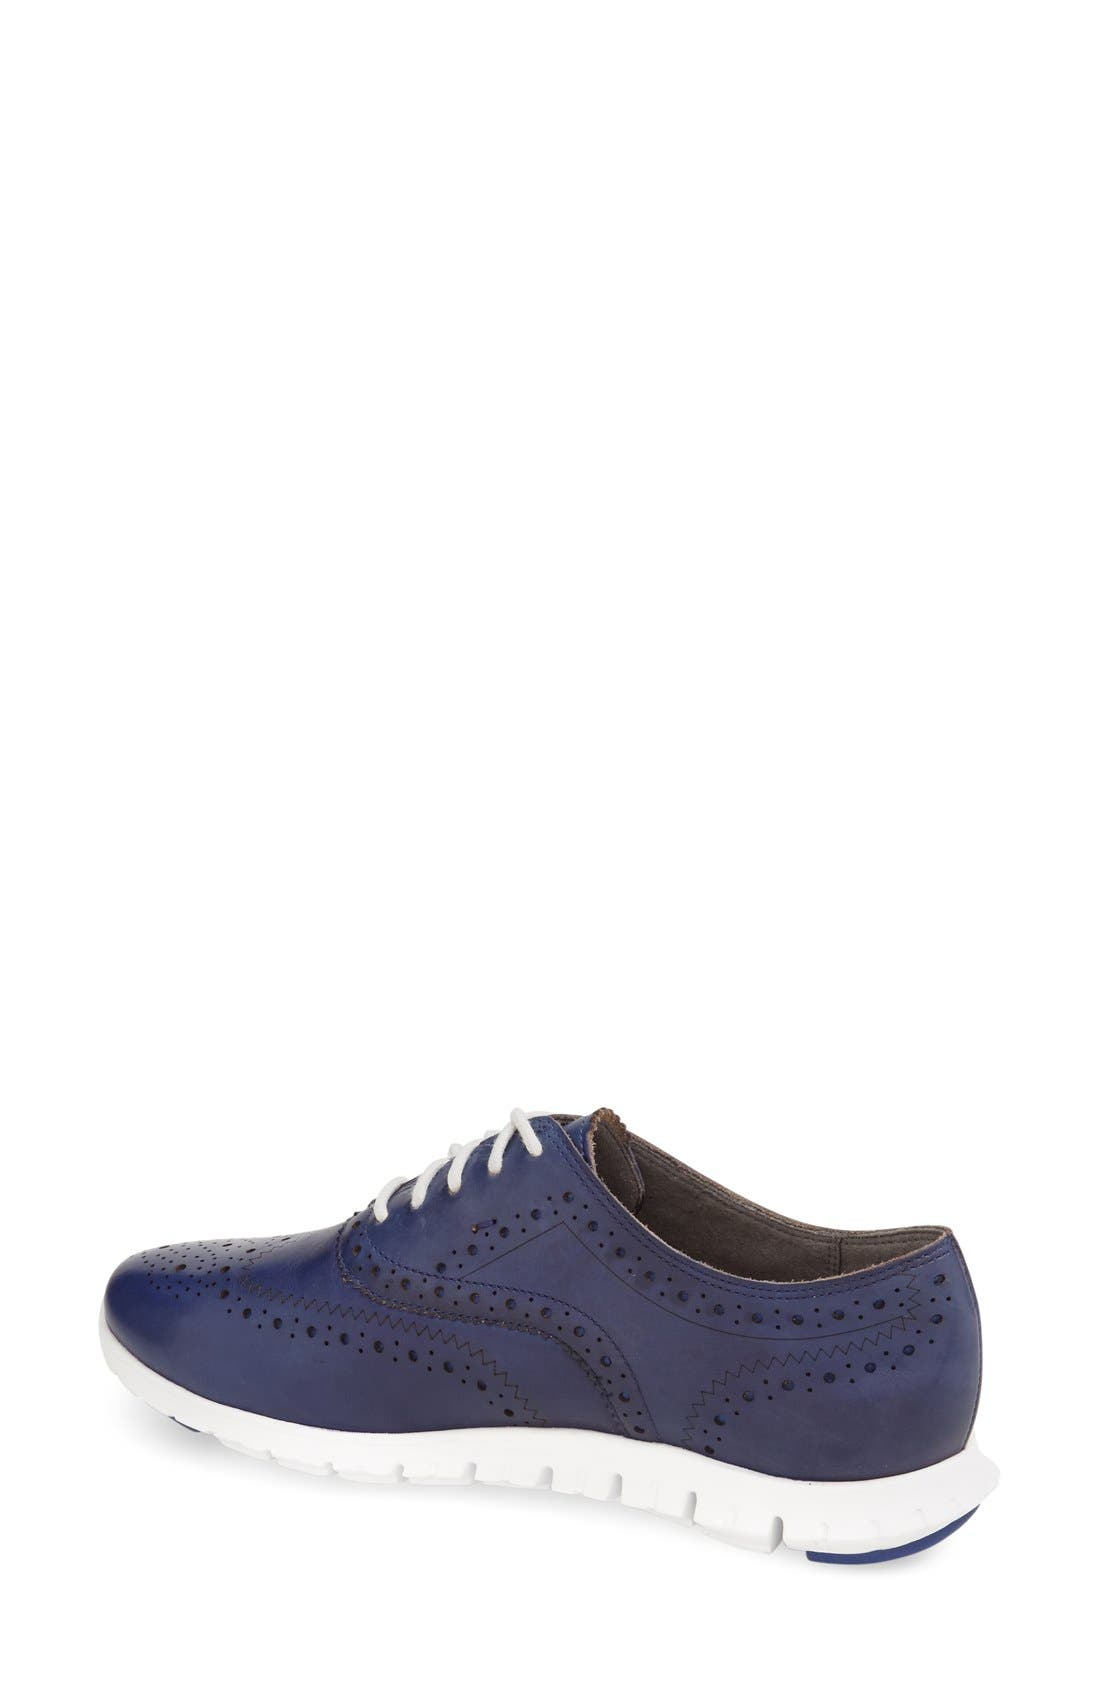 'ZeroGrand' Perforated Wingtip,                             Alternate thumbnail 50, color,